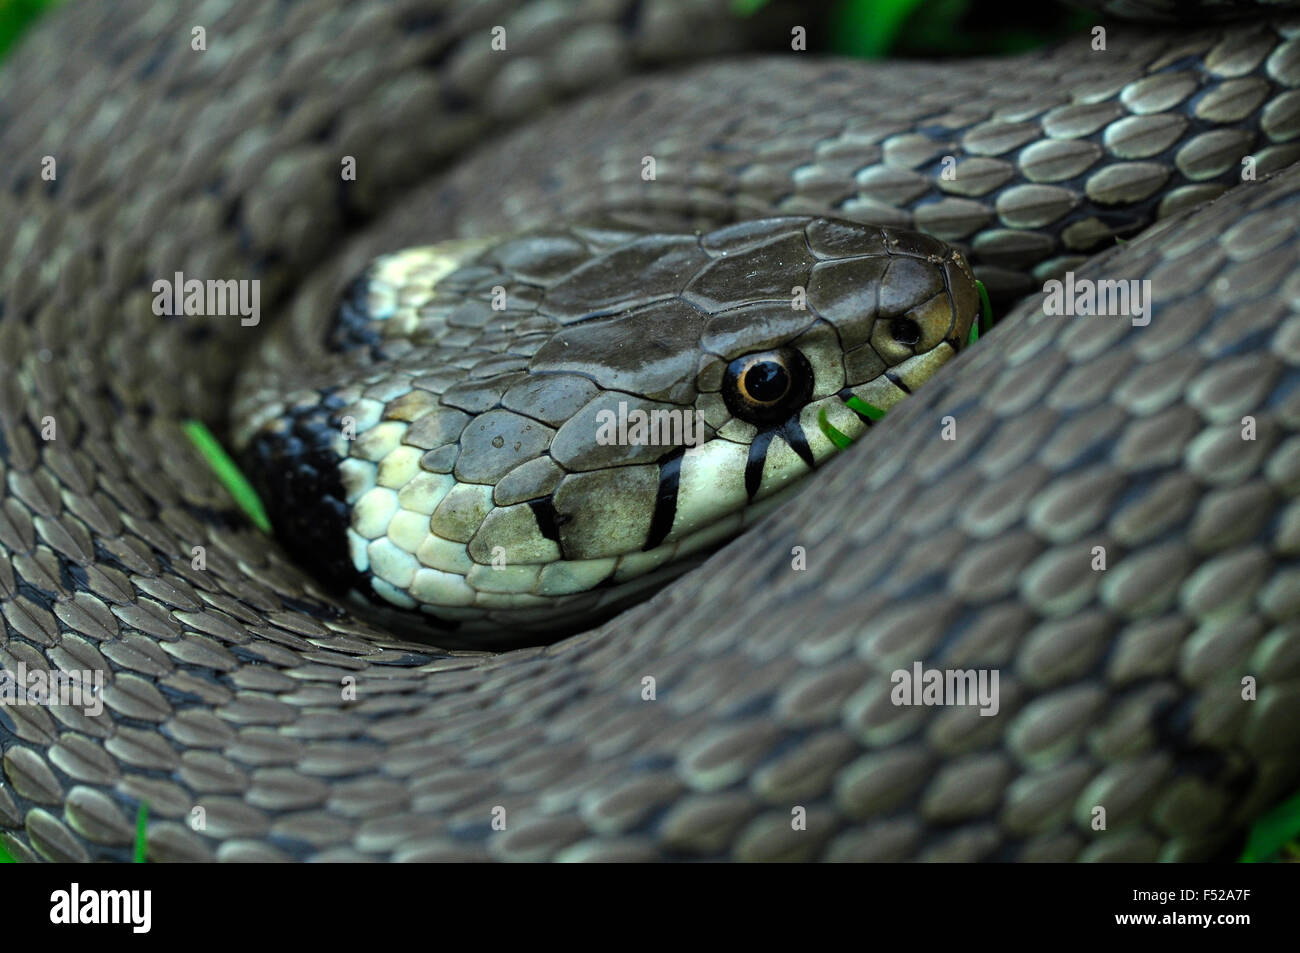 Grass snake curled up but wide awake UK - Stock Image